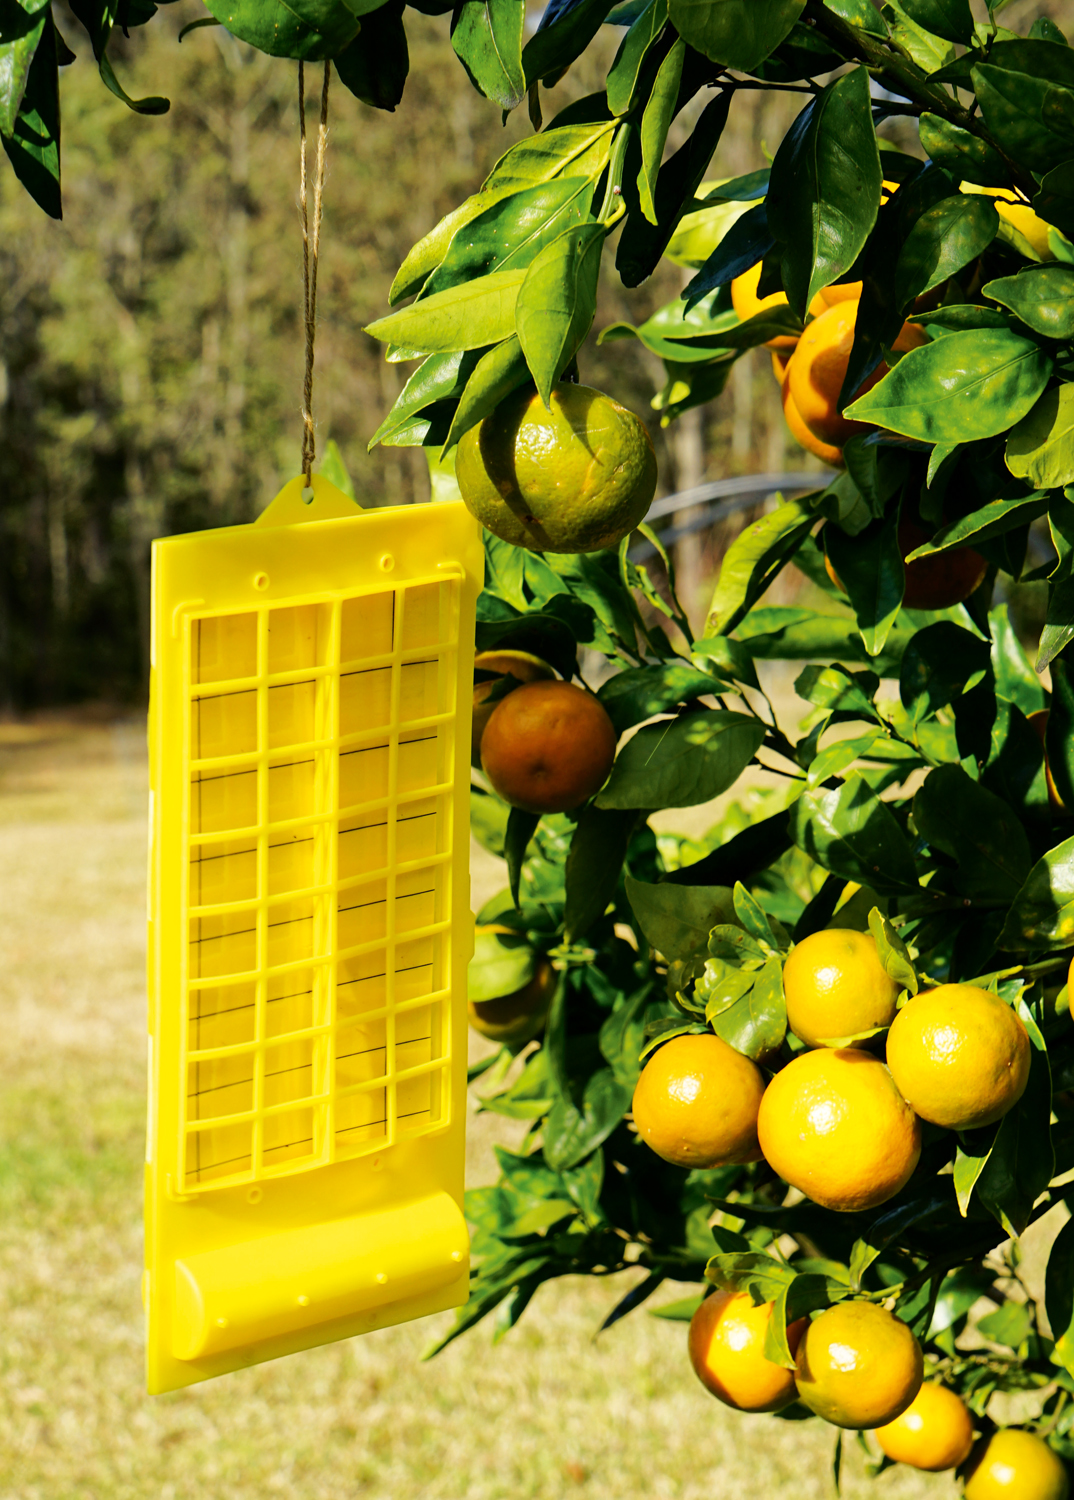 Fruit fly traps help control fruit fly - Kerry